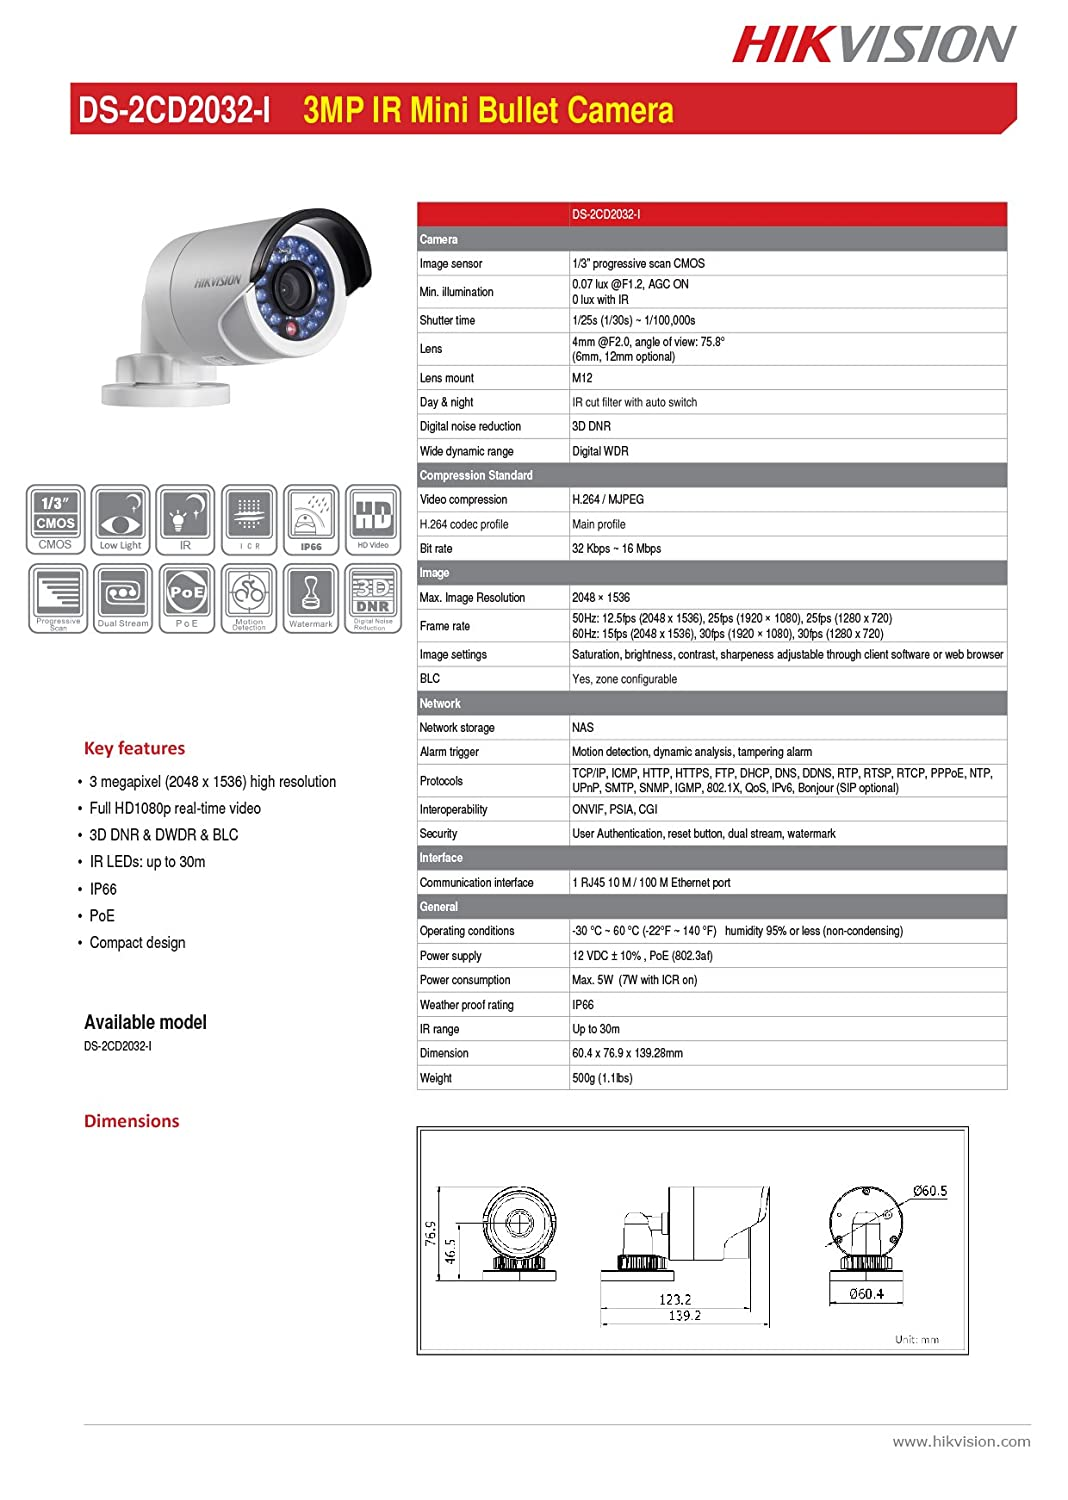 Hikvision Ds 2cd2032 I Fixed Focal Lens Mini Bullet Adjustable 60hz Filter Network Camera 3mp Full Hd 2048x1536 4mm True Day Night Poe 12vdc